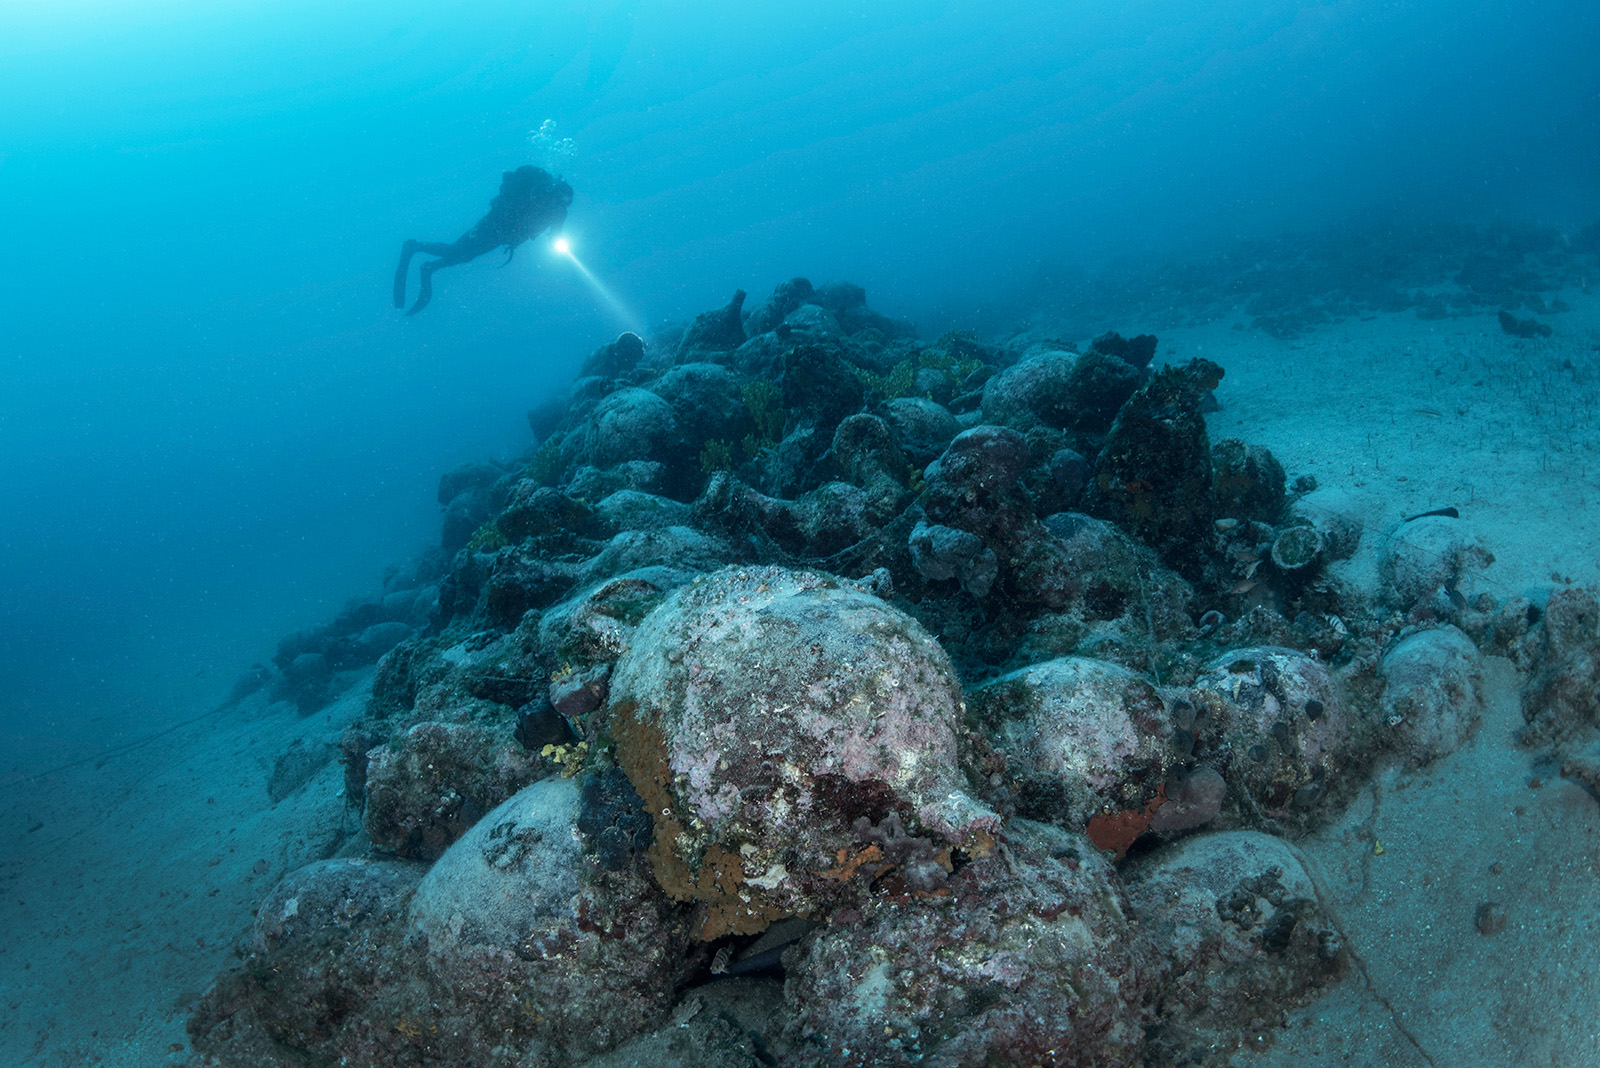 Divers discover 2,000-year-old sunken Roman ship off Pag, Croatia